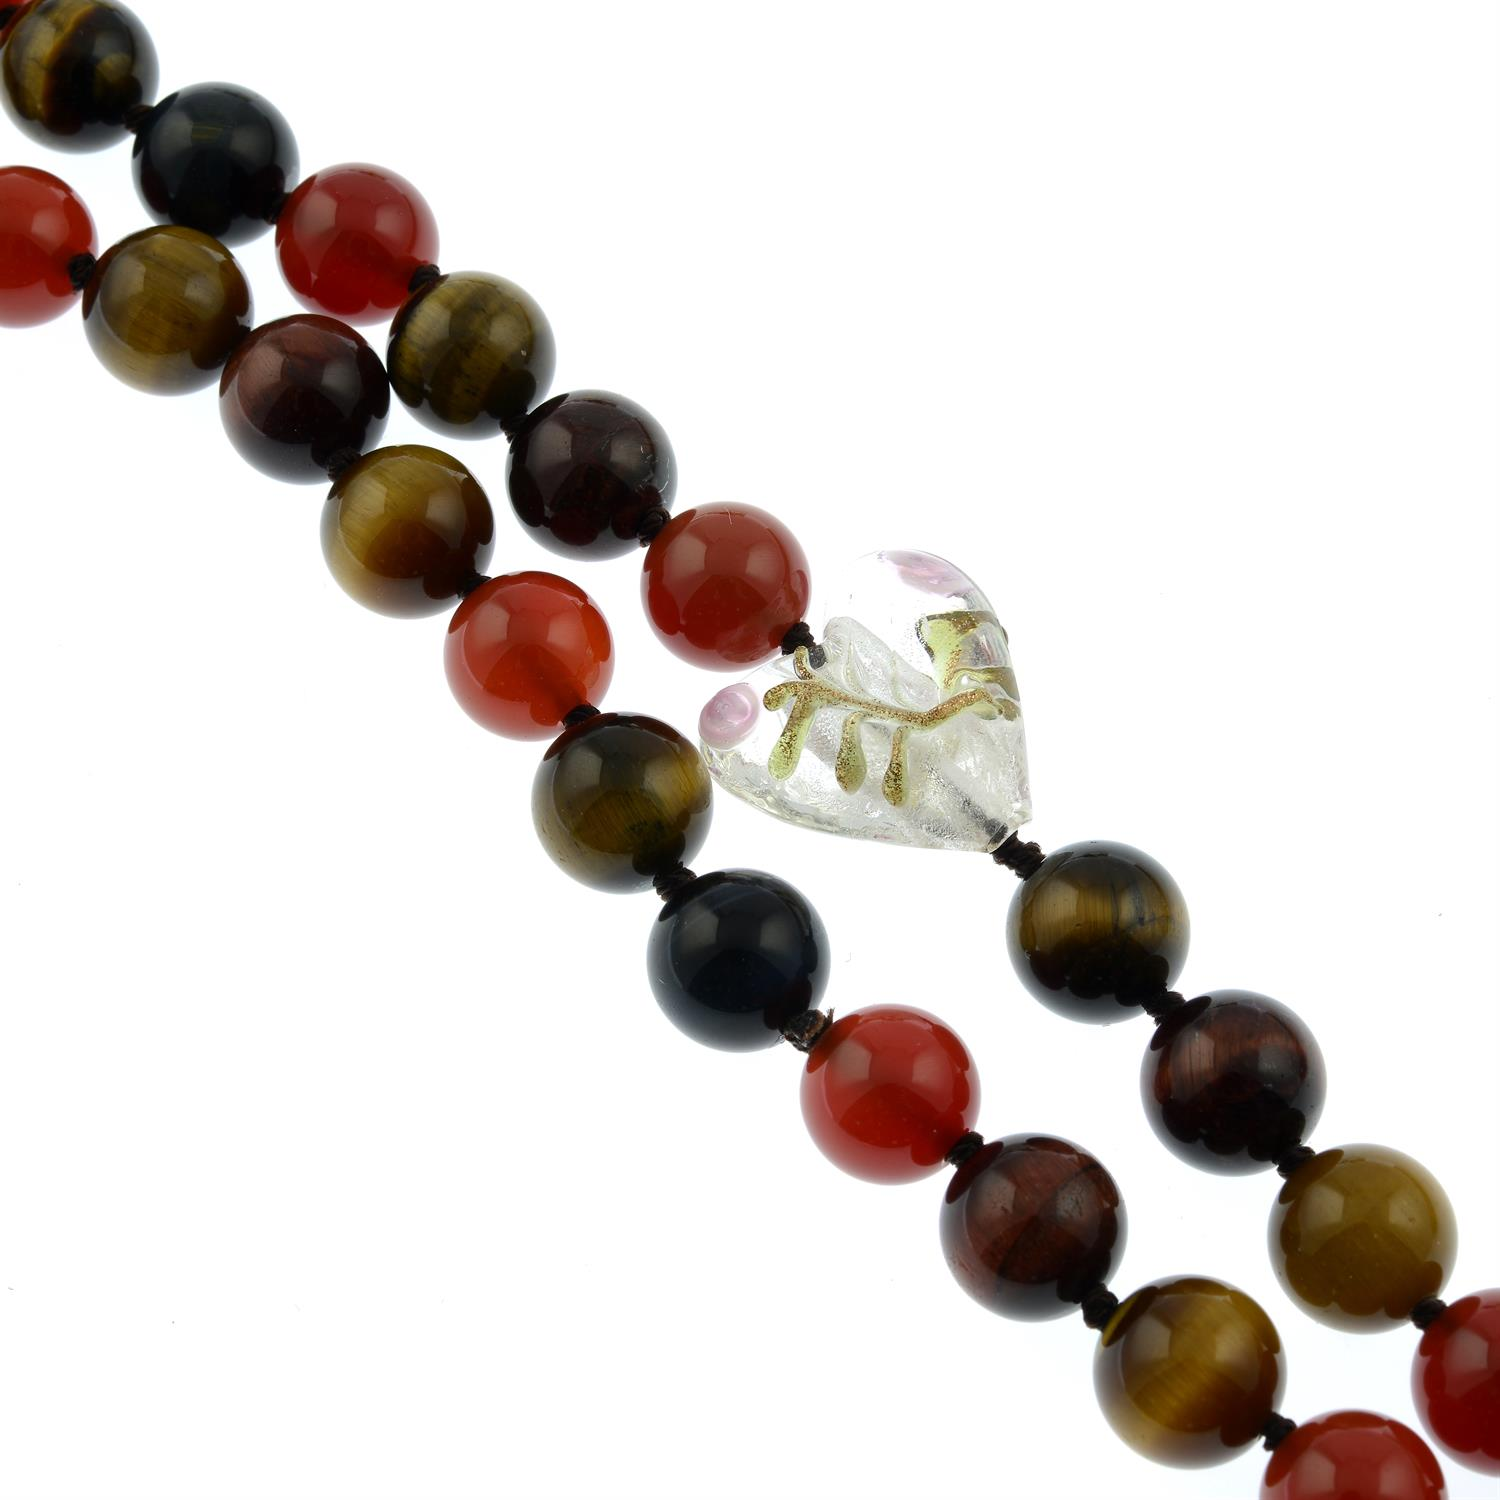 A grooved cuff bangle, a tiger's-eye bead necklace, a black glass necklace and a cultured pearl